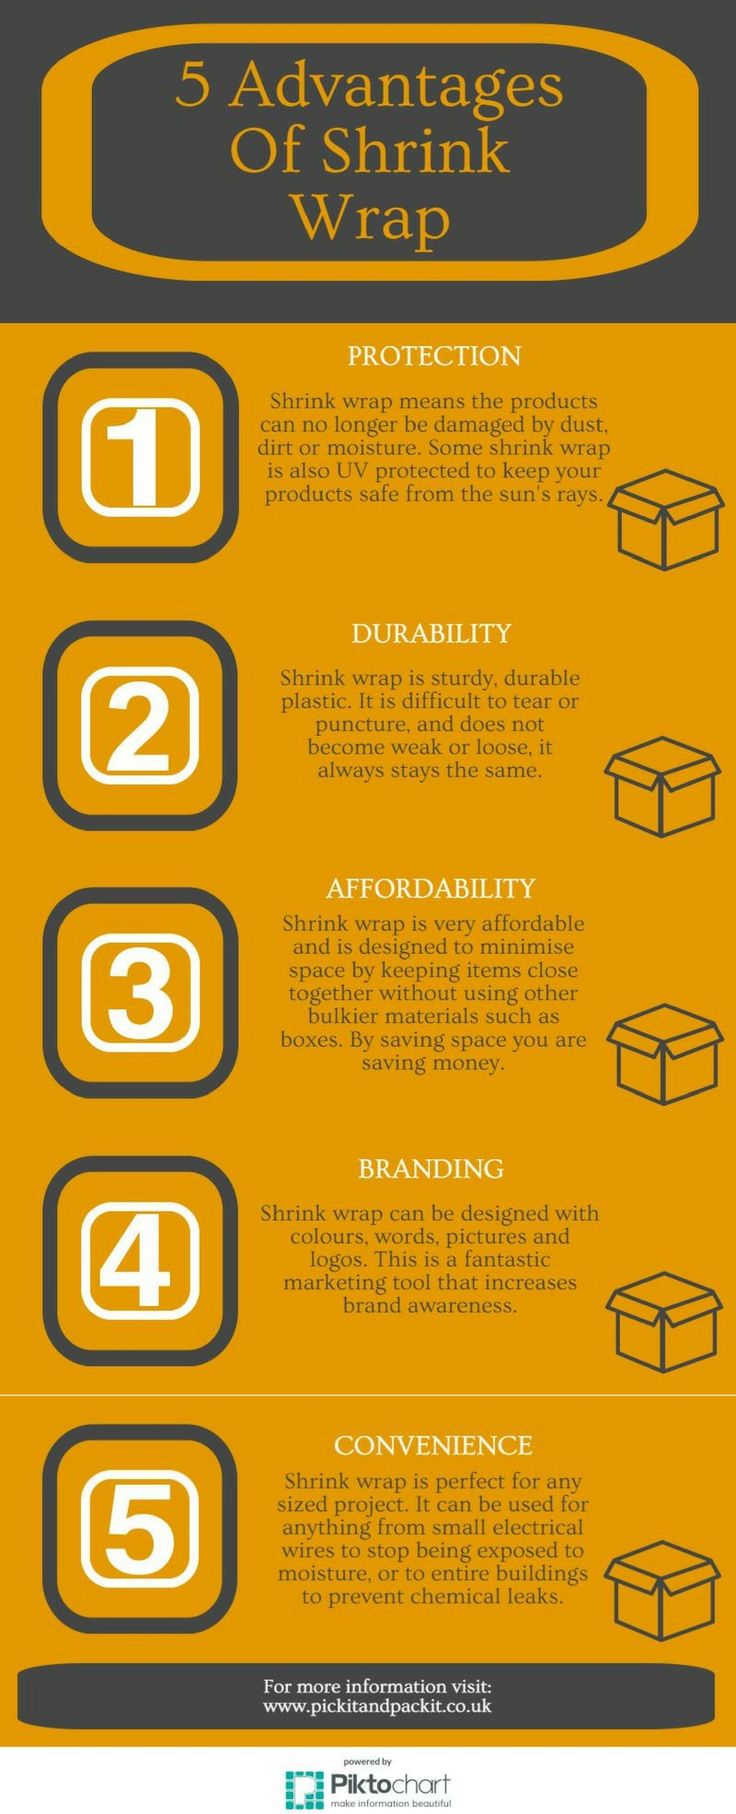 http://www.pickitandpackit.co.uk Here are 5 advantages of shrink wrapping! Bay A, Anglesey House, Anglesey Road, Burton on Trent, DE14 3LX